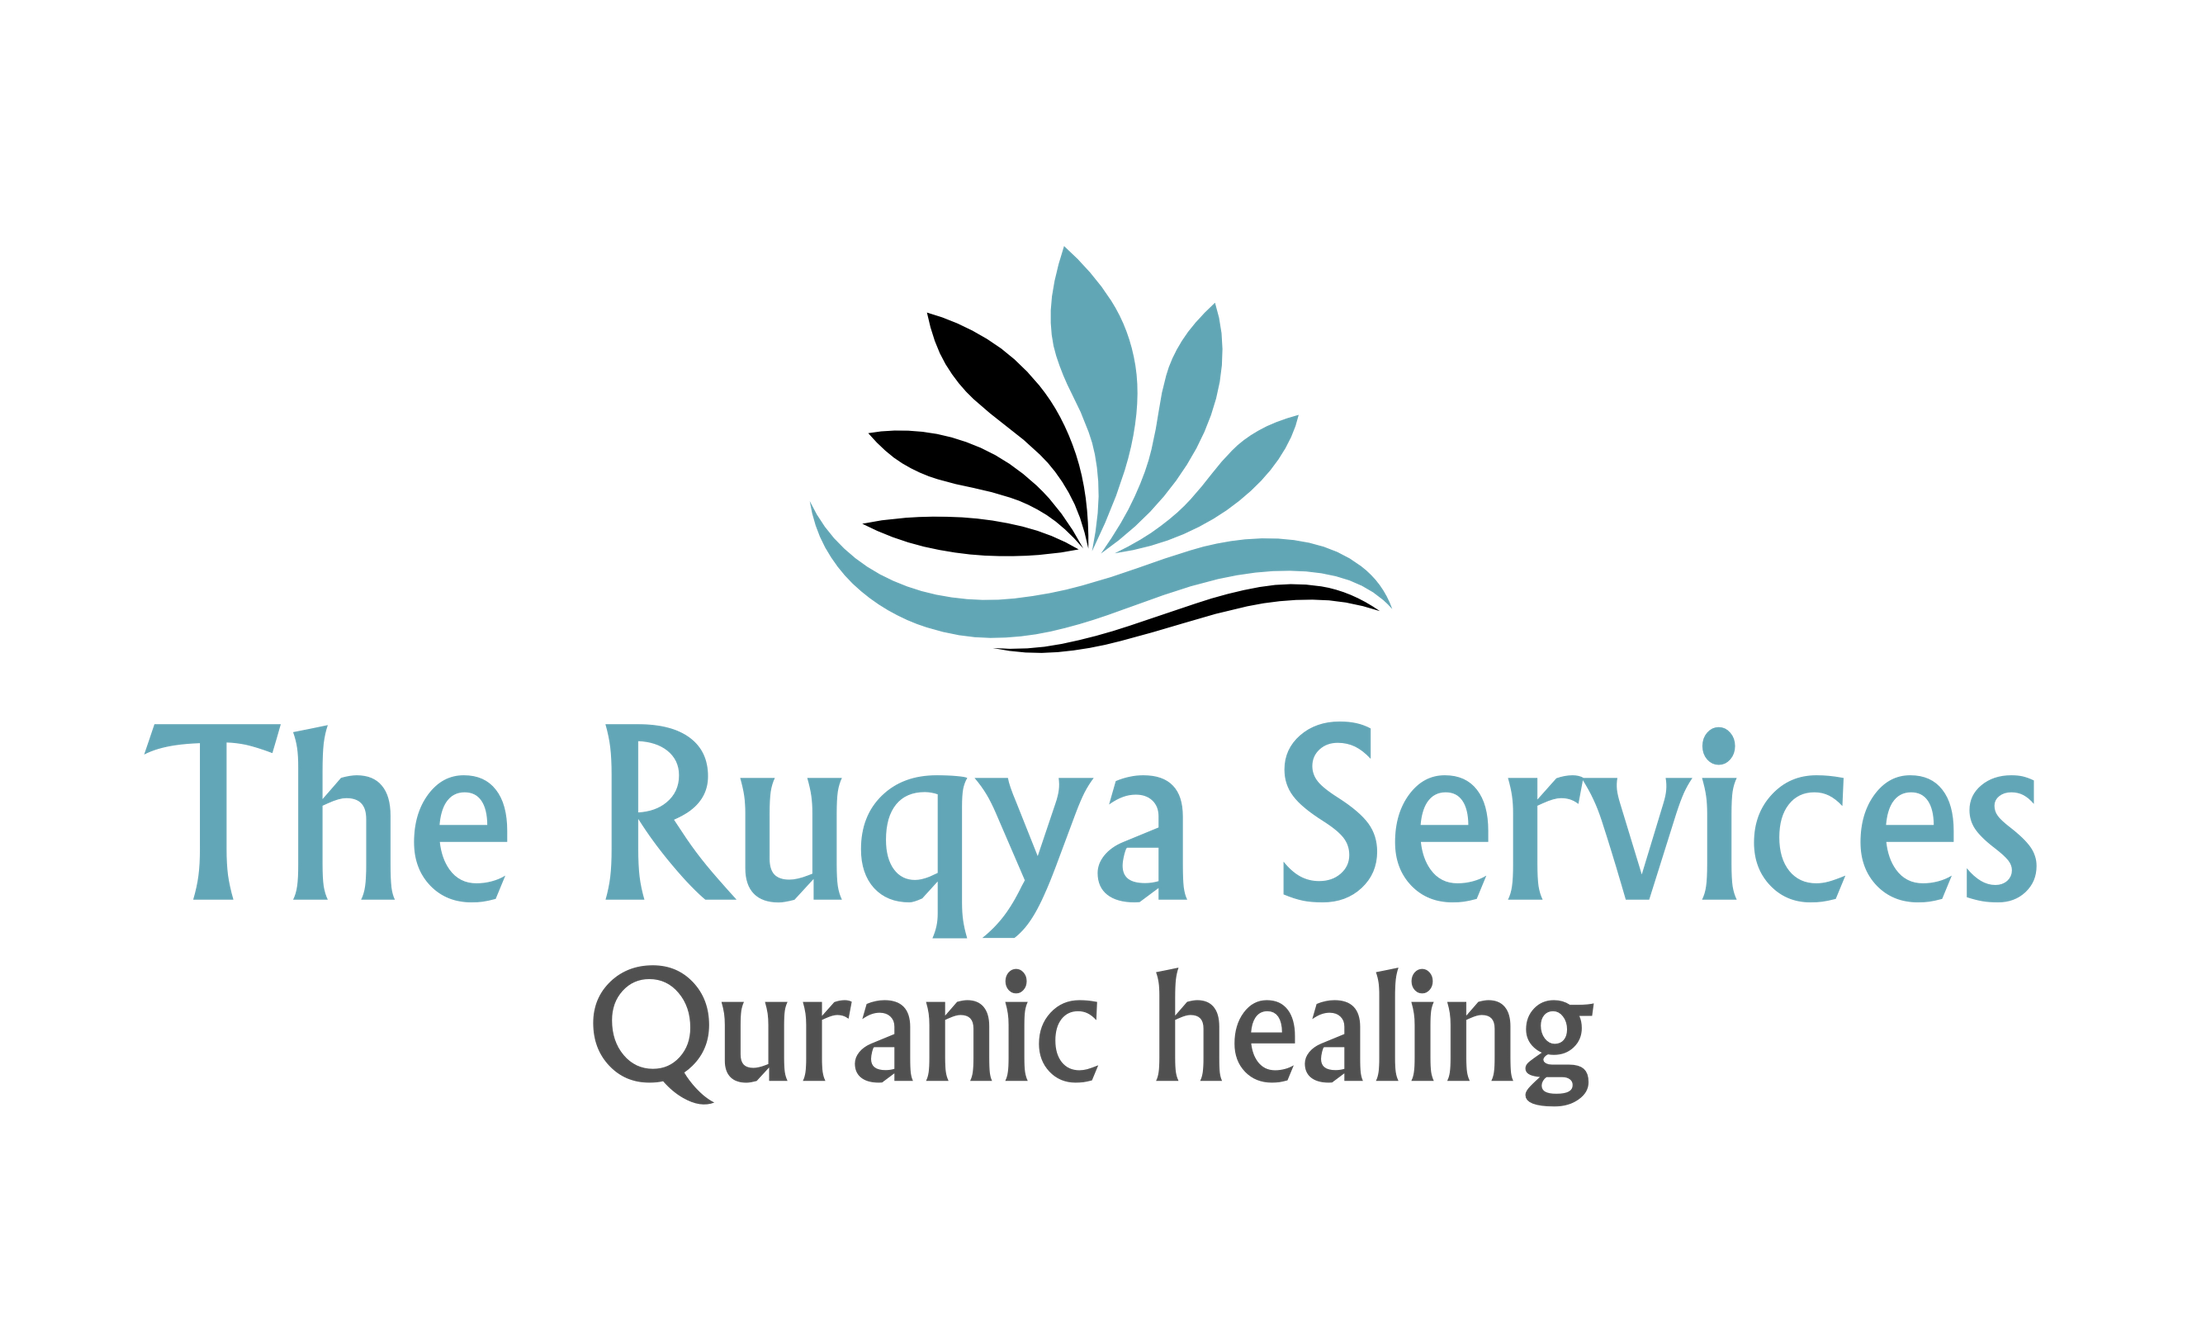 SYMPTOMS | The Ruqya Services